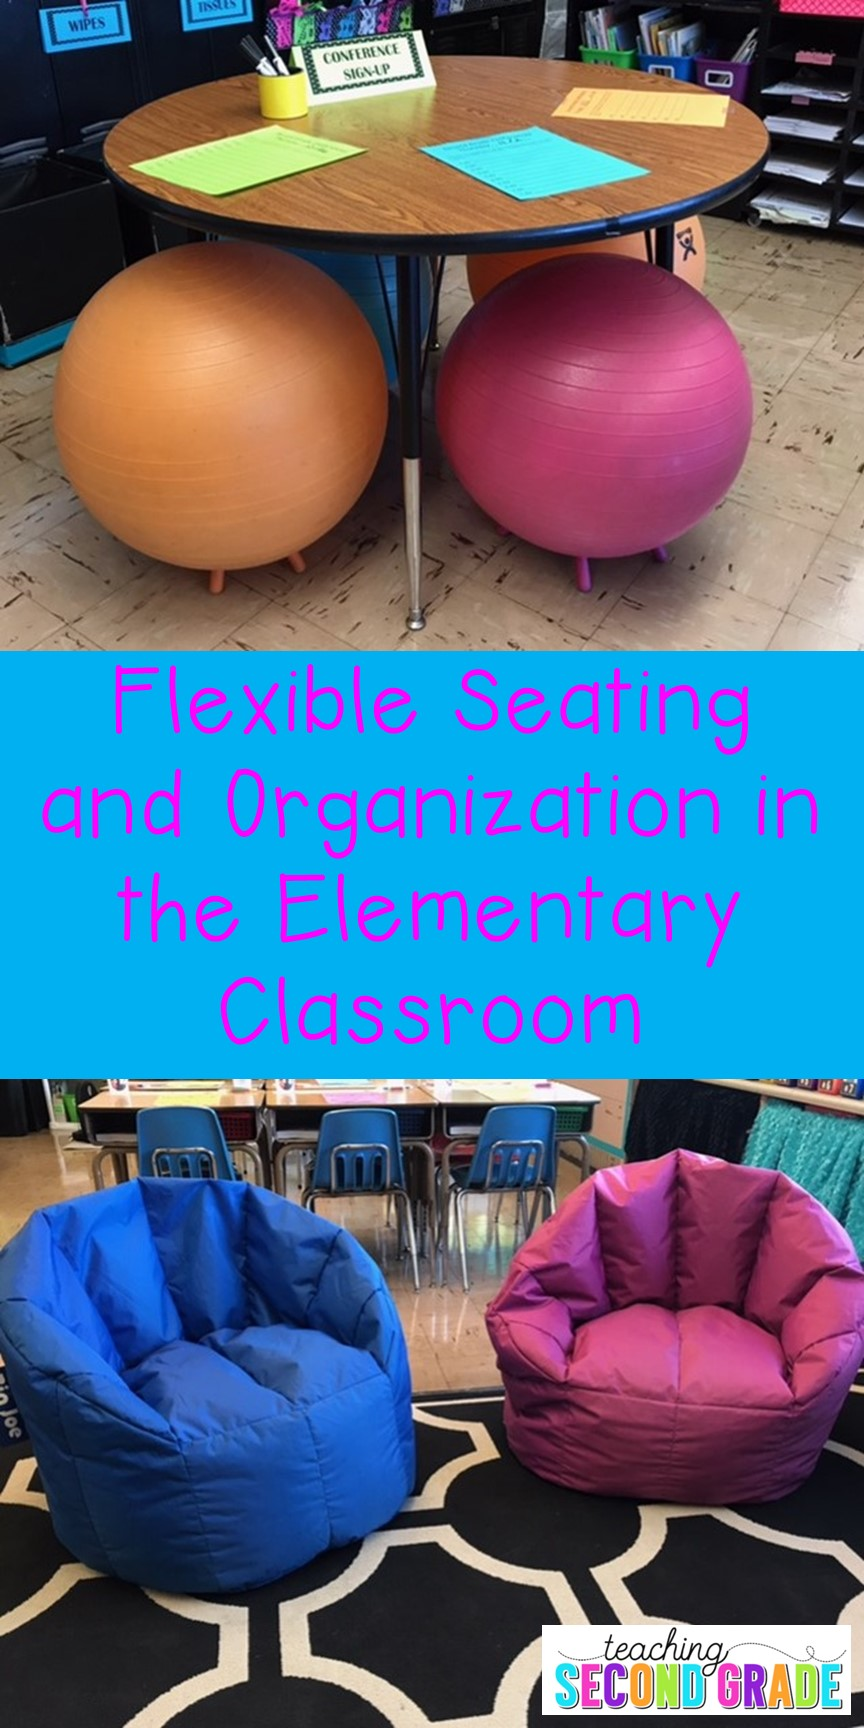 Flexible Seating and Organization - yoga balls and comfy chairs